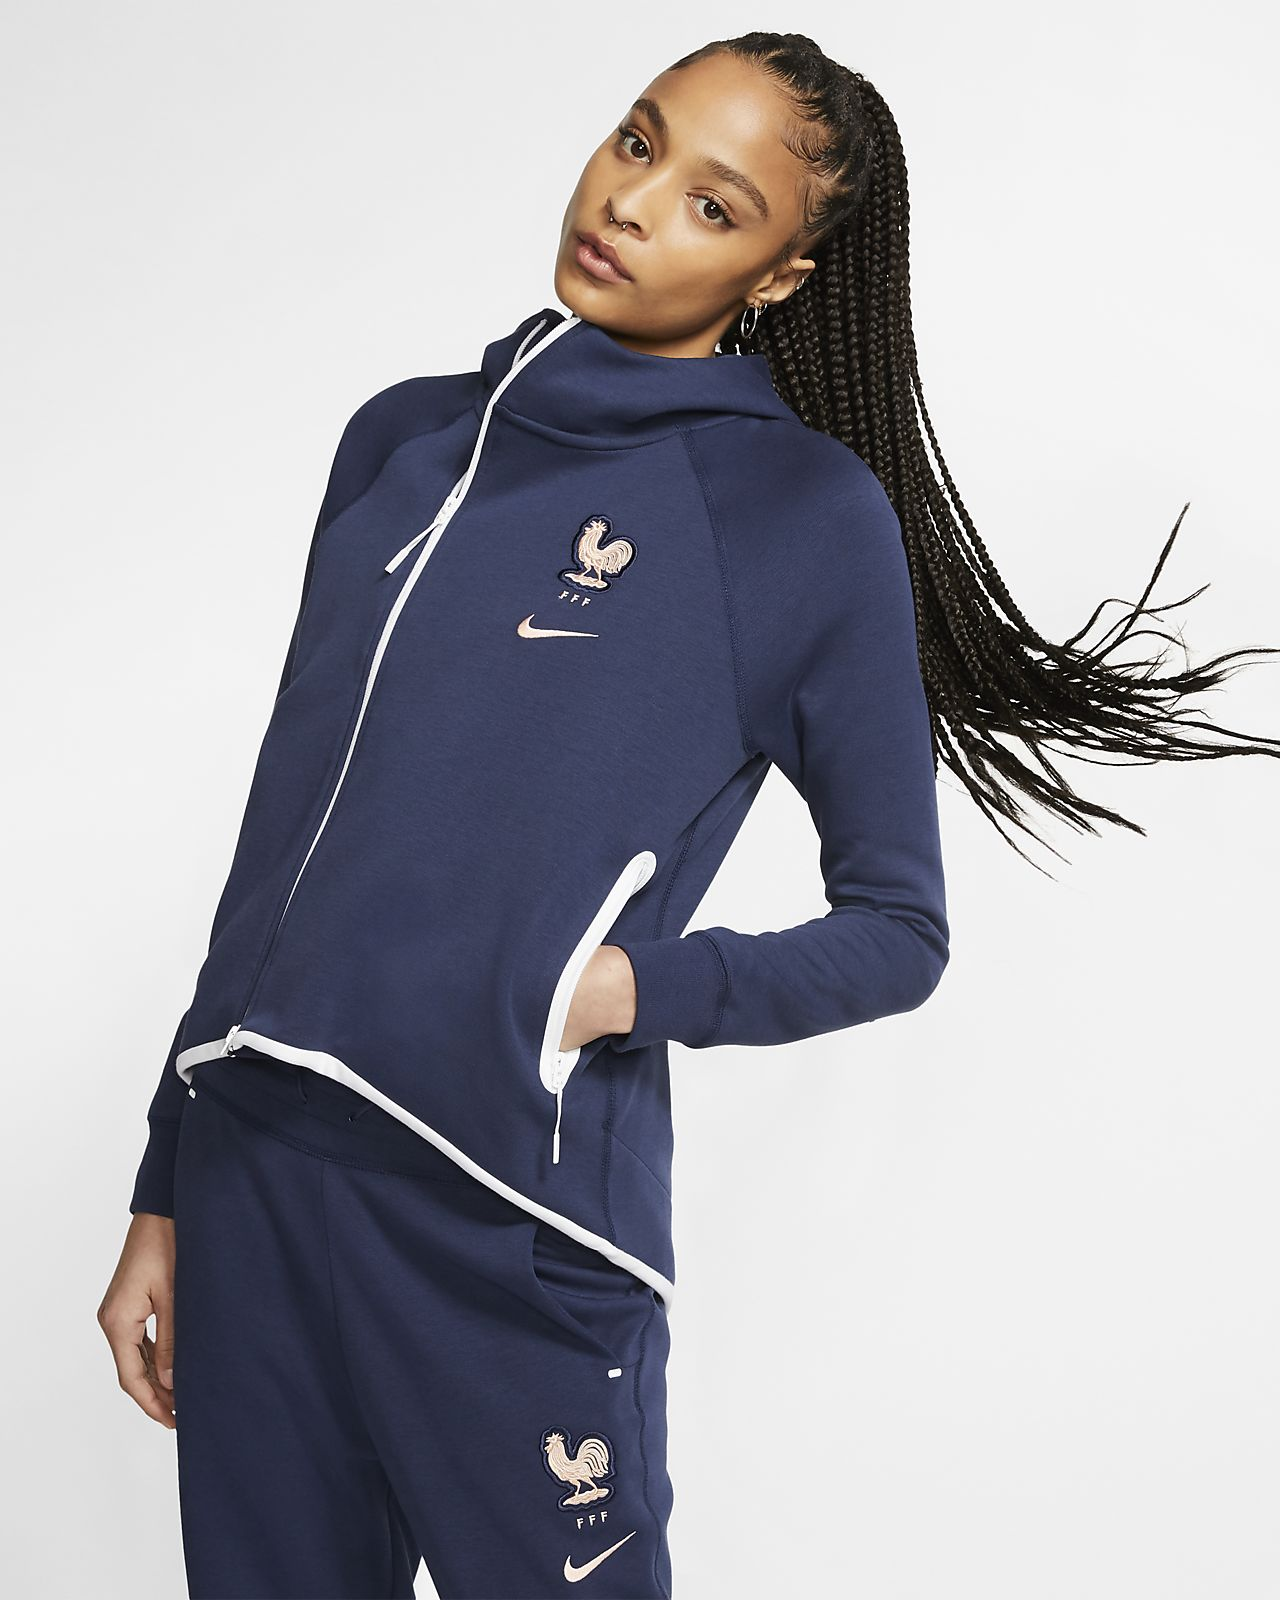 FFF Tech Fleece Voetbalvest voor dames